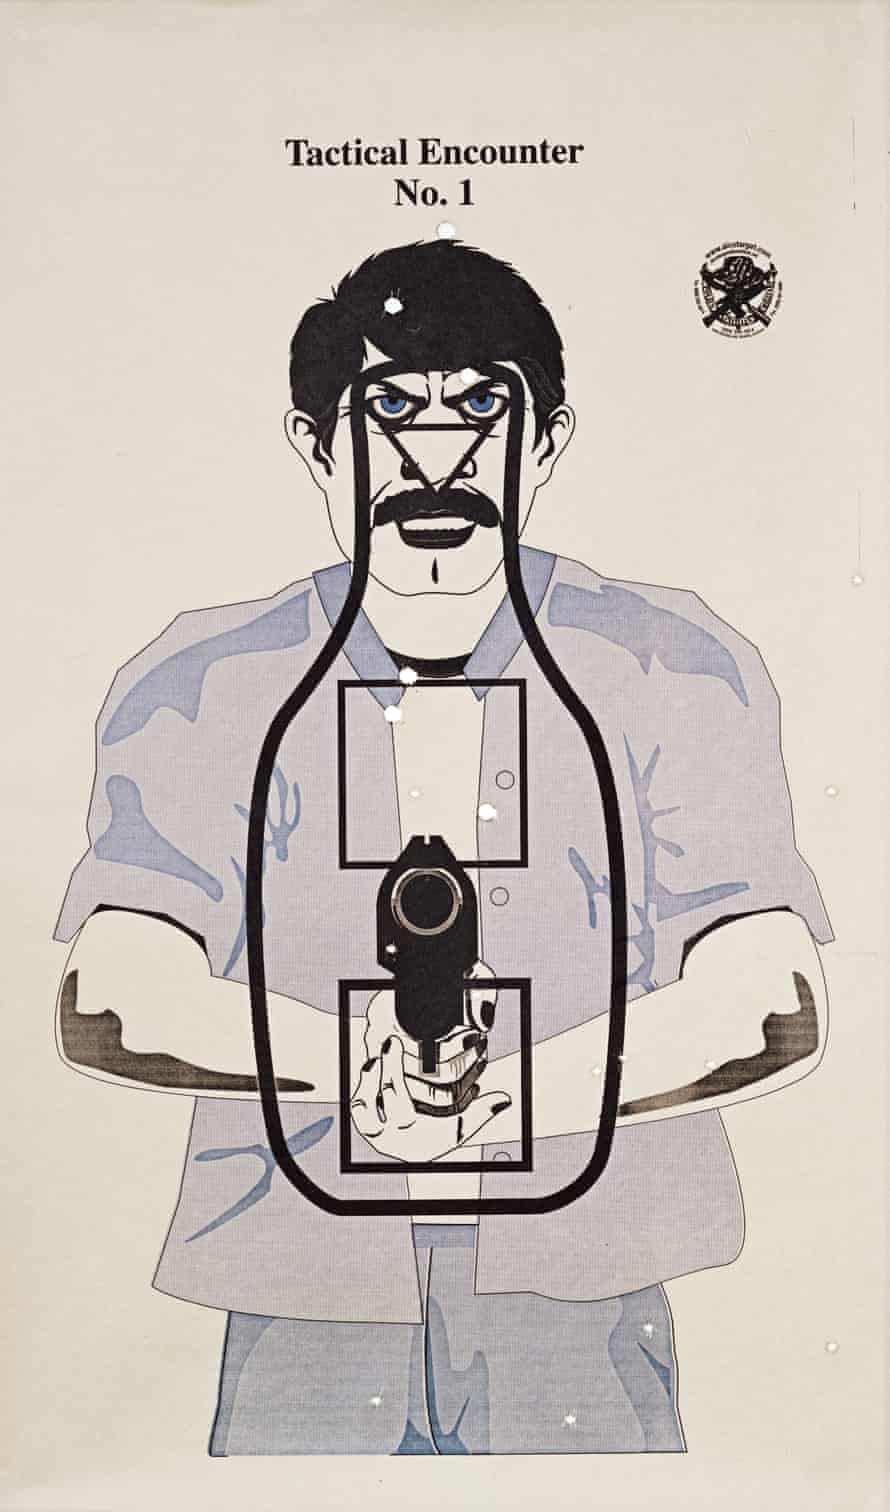 Here, a brain surgeon, 45, and his son, 16, used a 50 calibre pistol and a Luger 9mm pistol. Dad shot at the brain and his son shot at the body